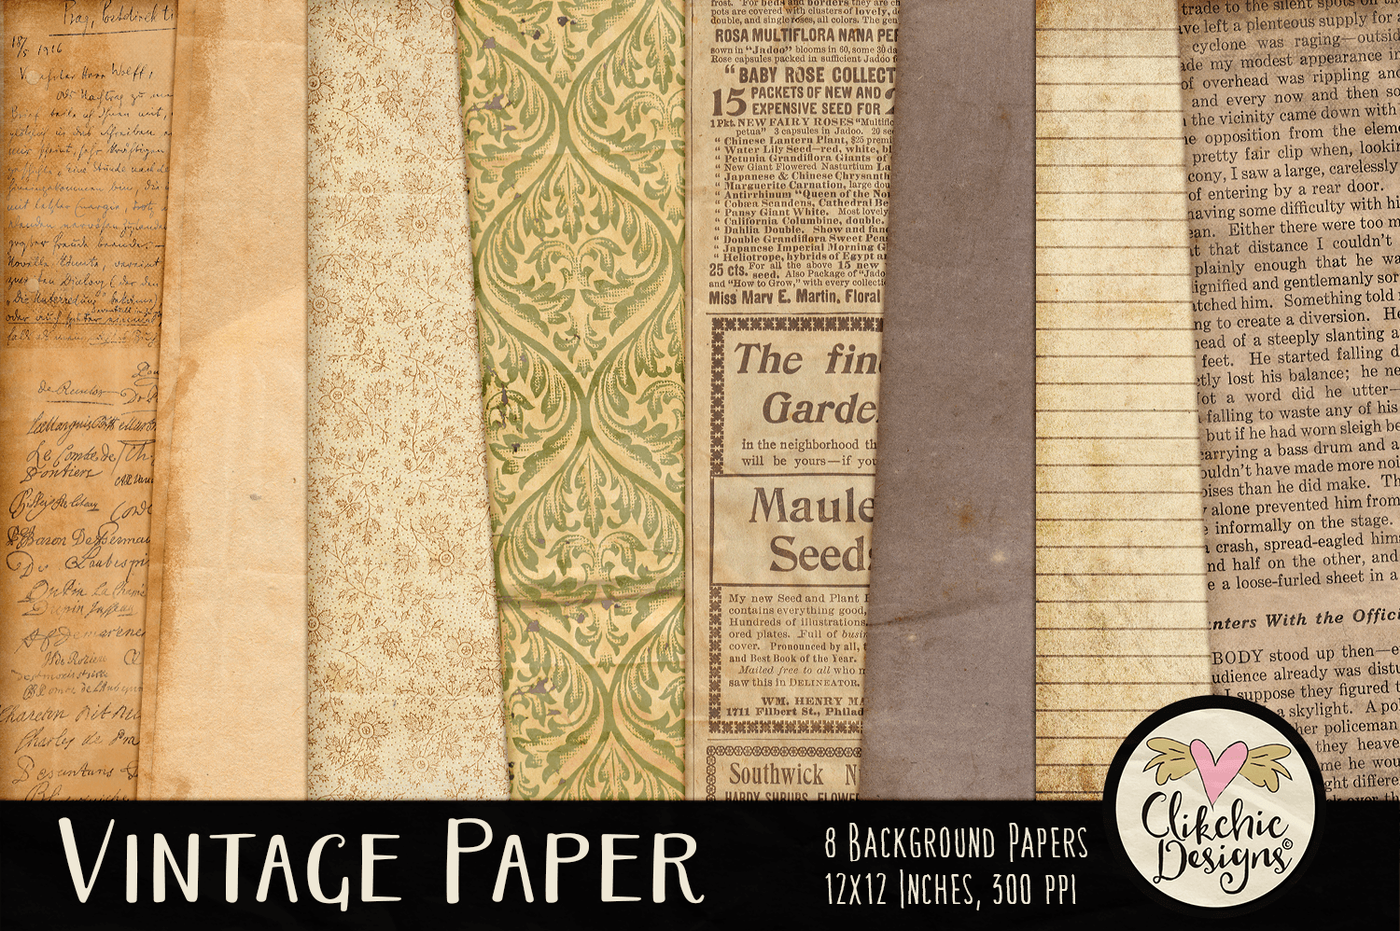 Vintage Paper Background Textures By Clikchic Designs